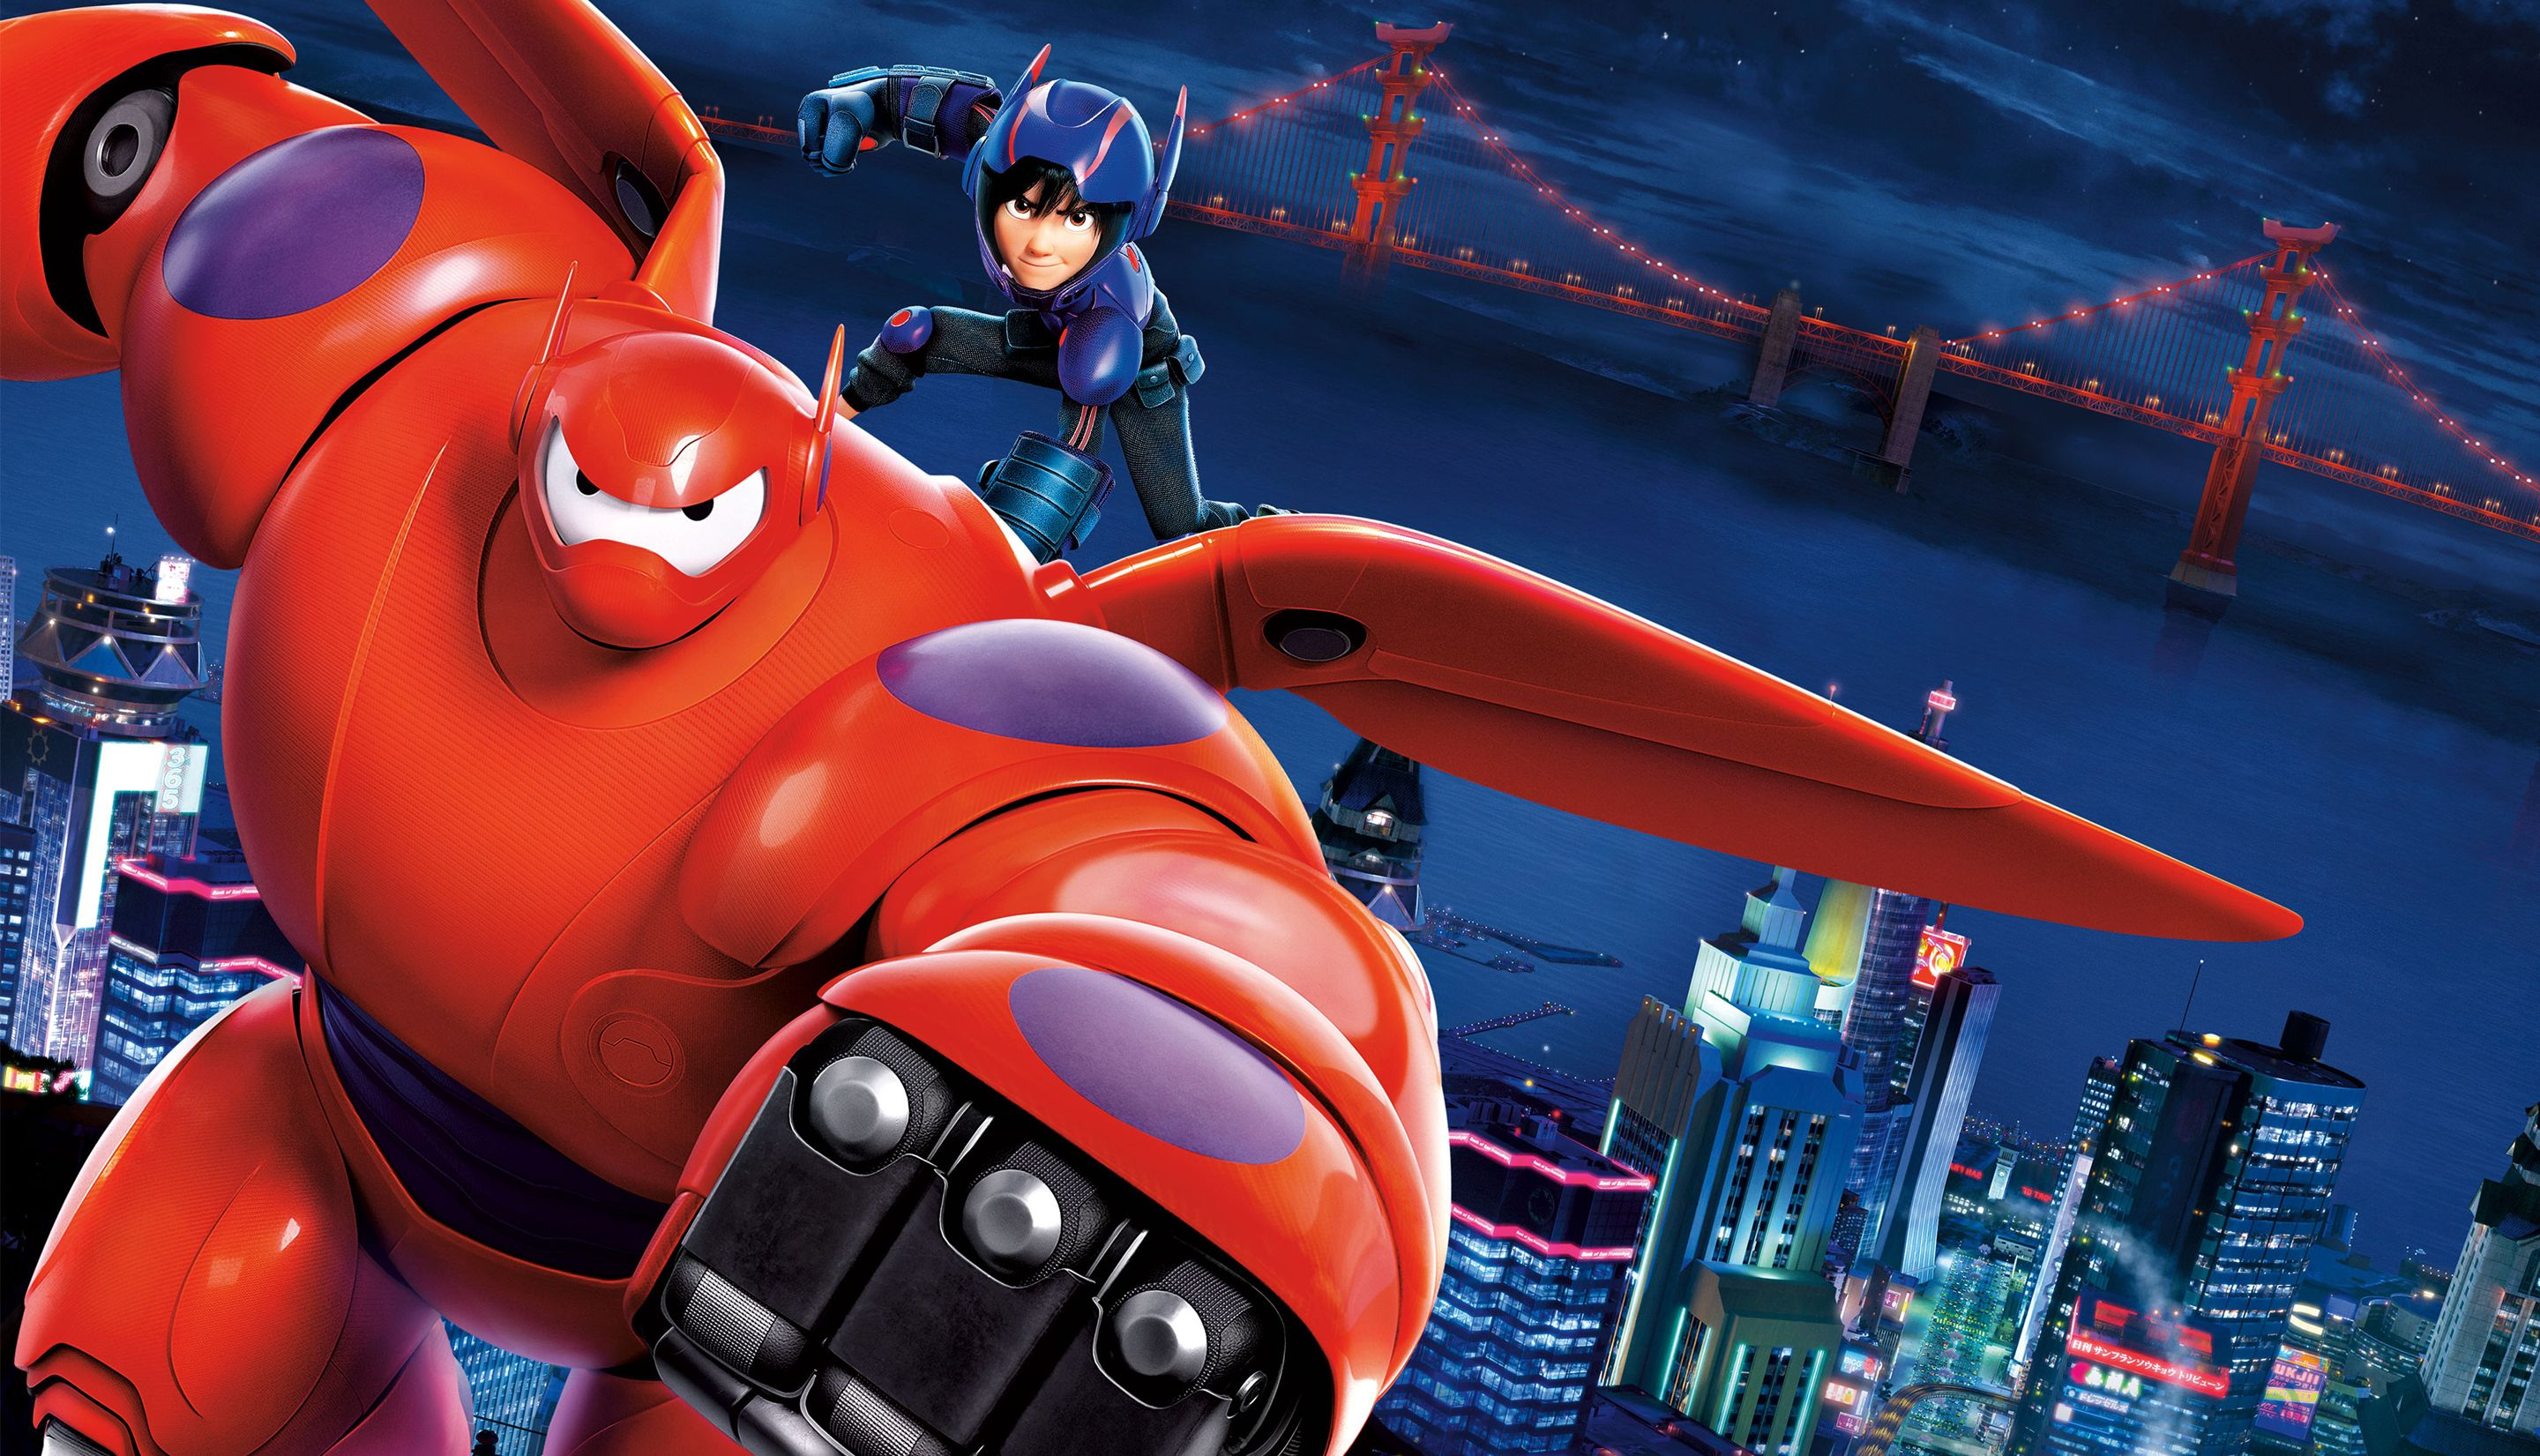 Hiro and Baymax fly | Cultjer